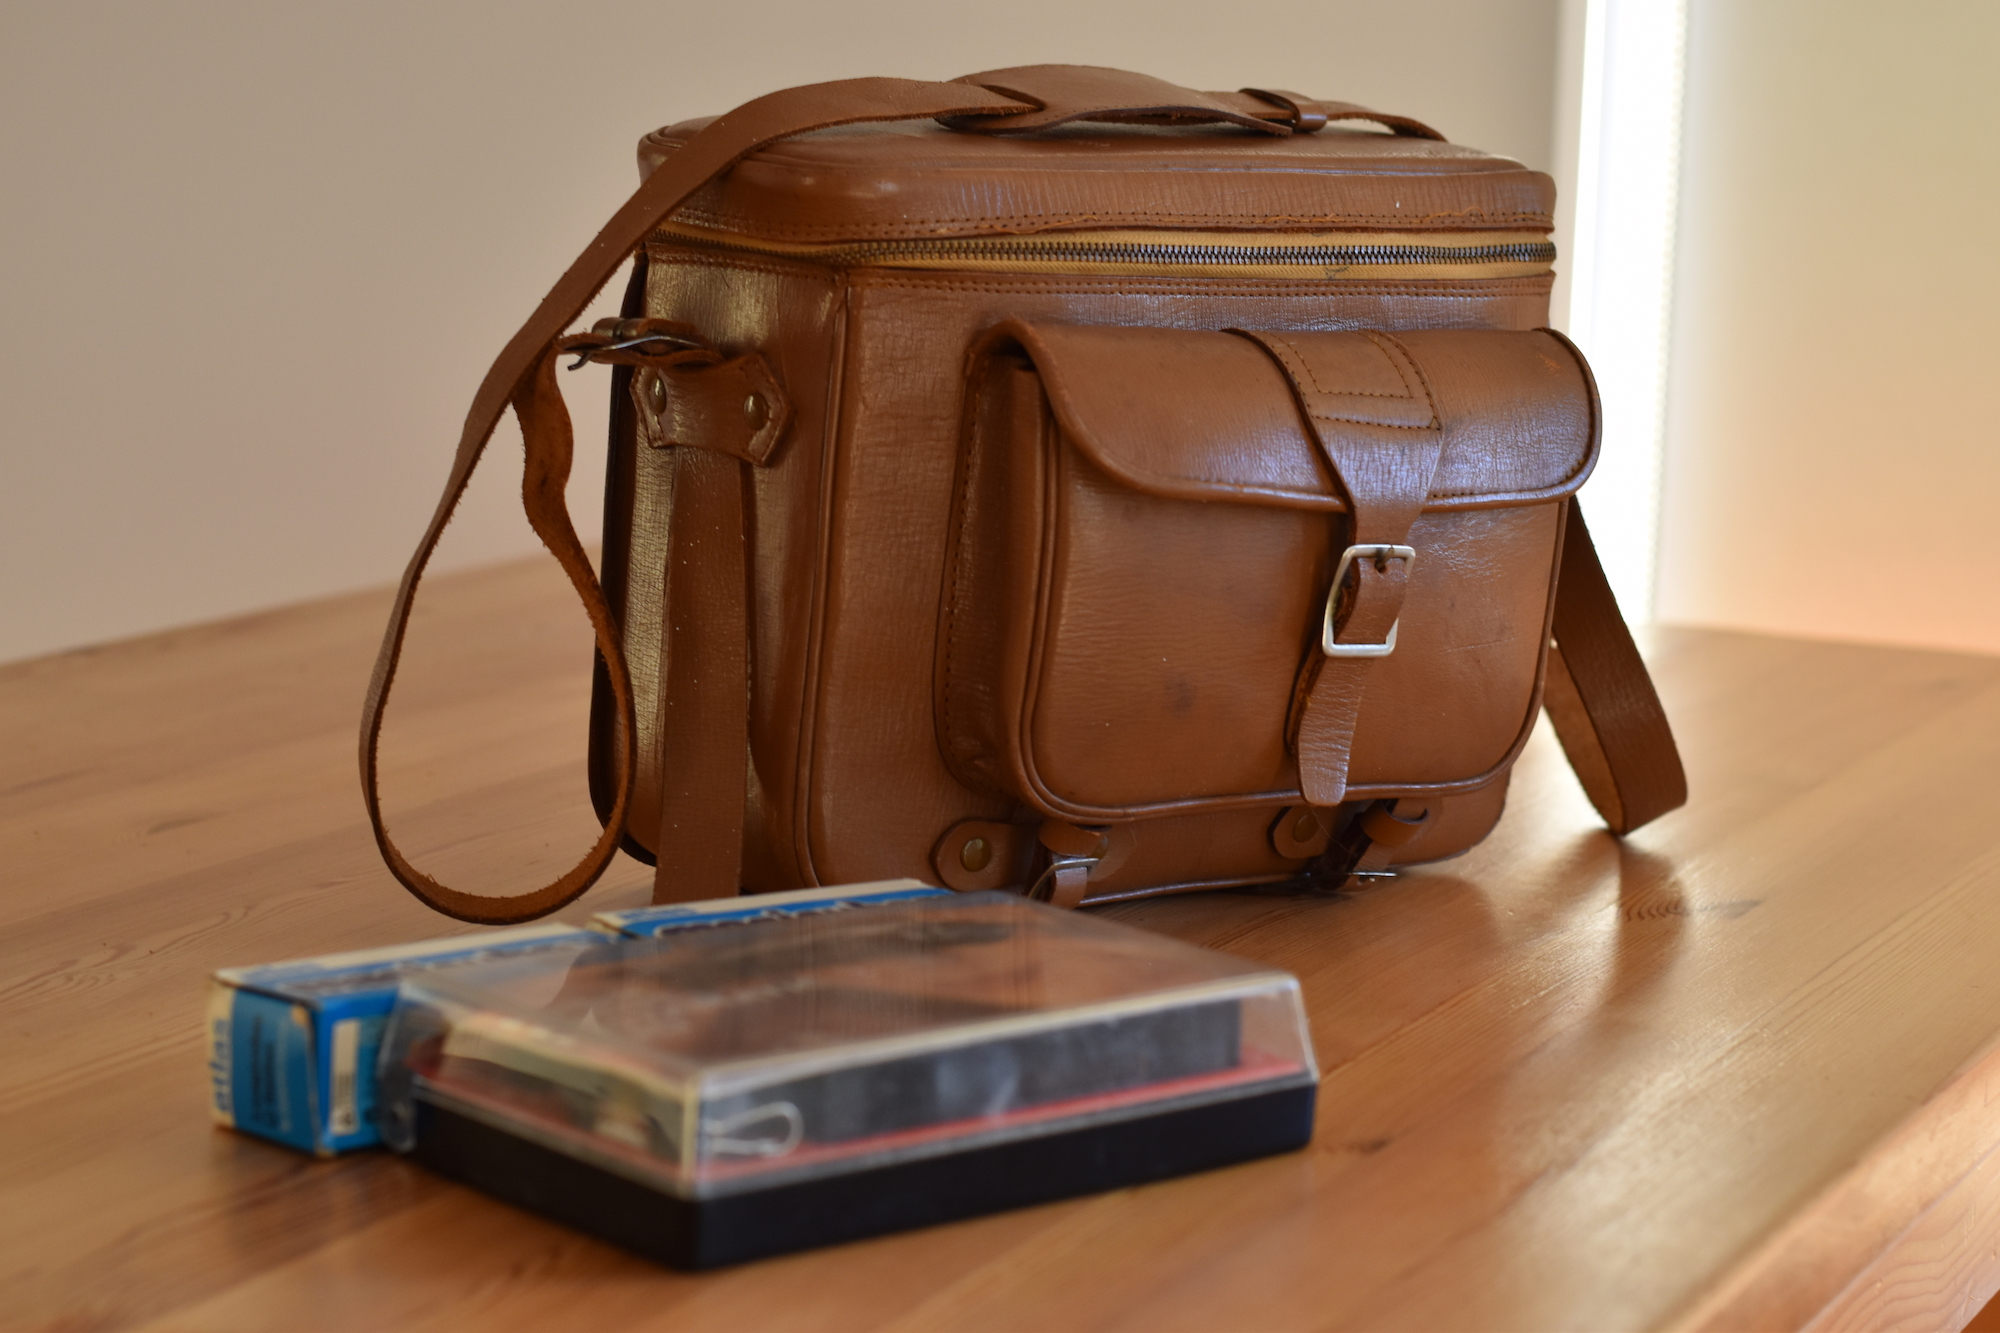 Kodak Instamatic Pocket 100 in original plastic box in front of a light brown leather camera bag with zip-around top and front buckled pocket